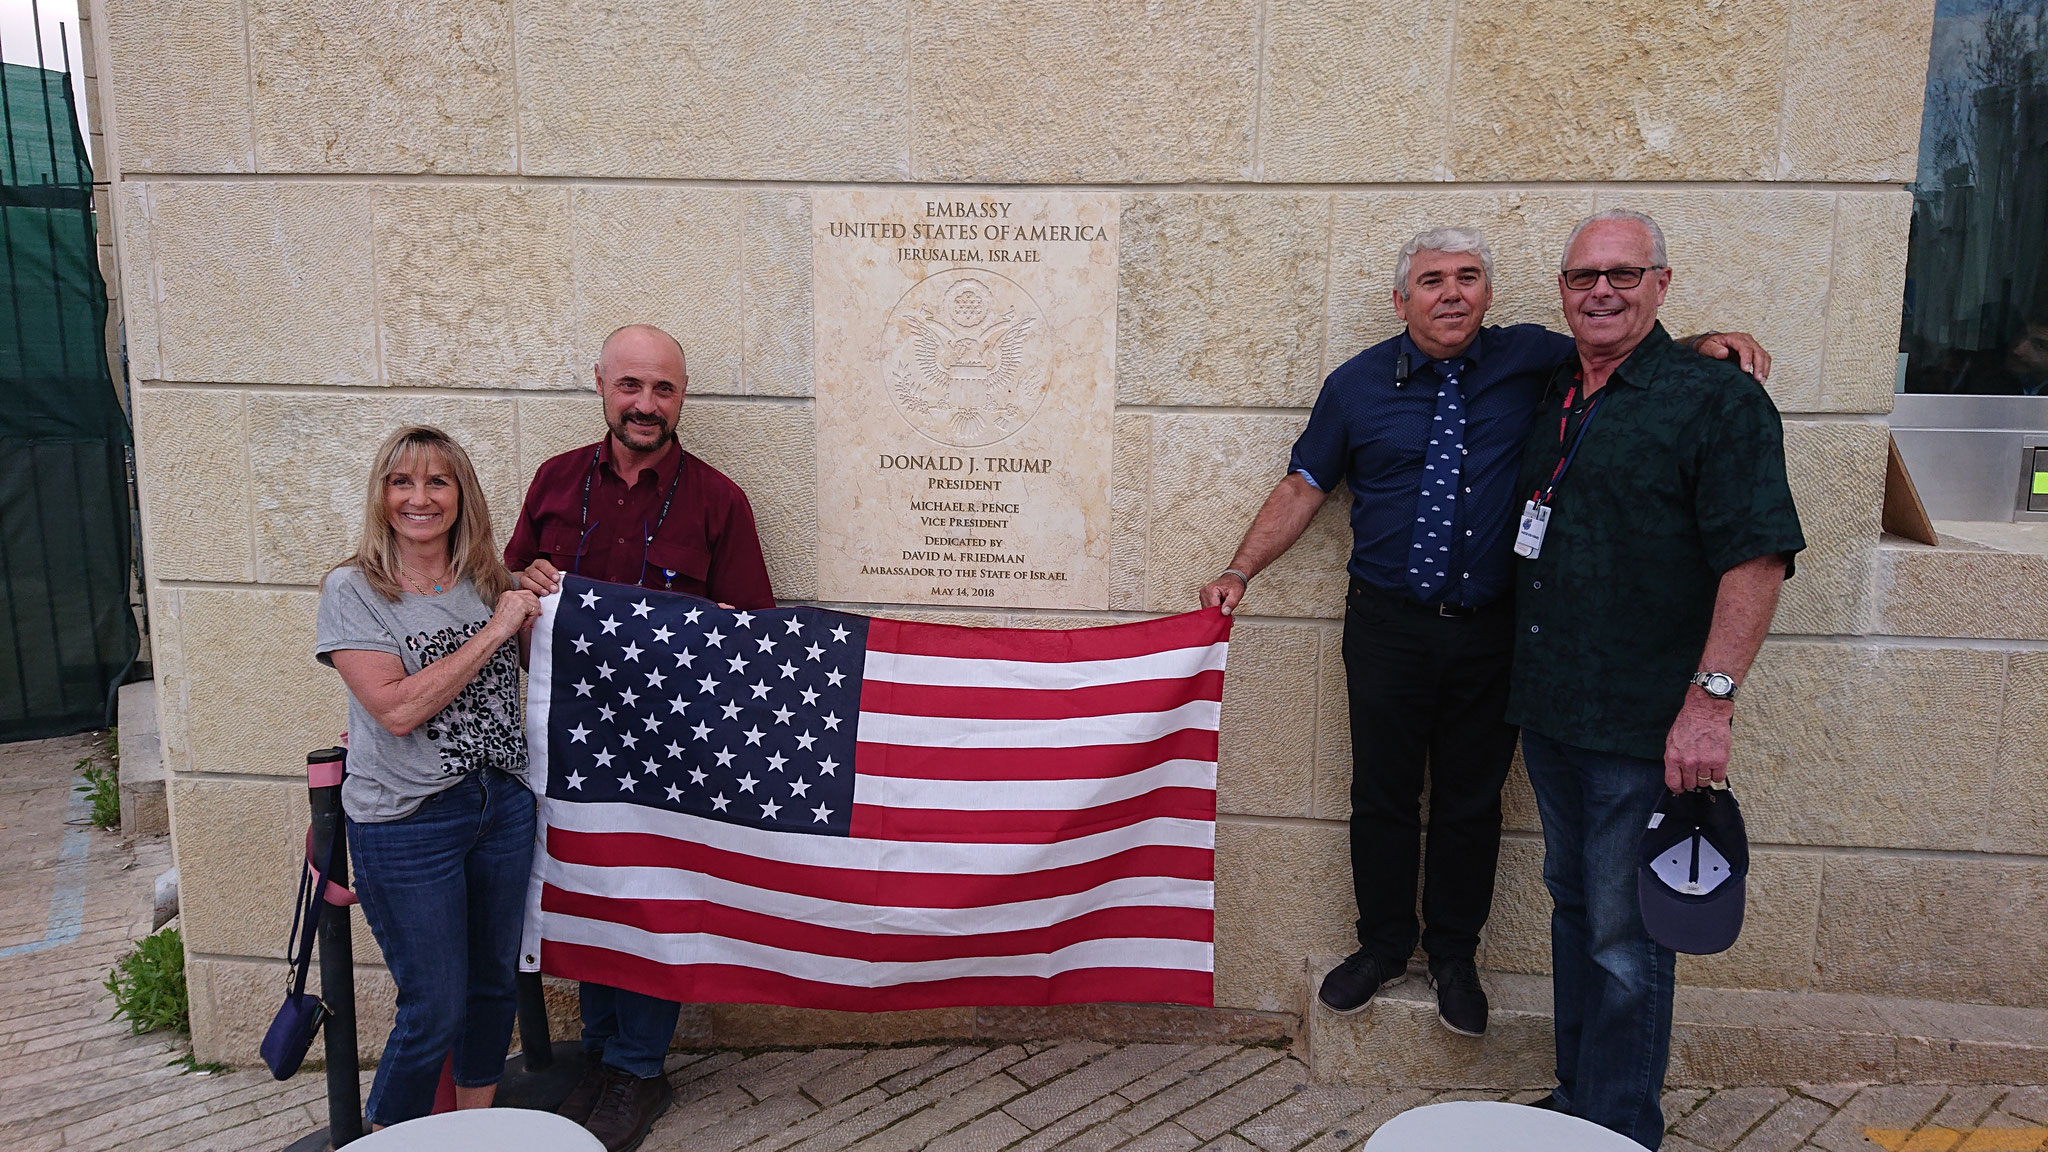 At the US Embassy in Jerusalem